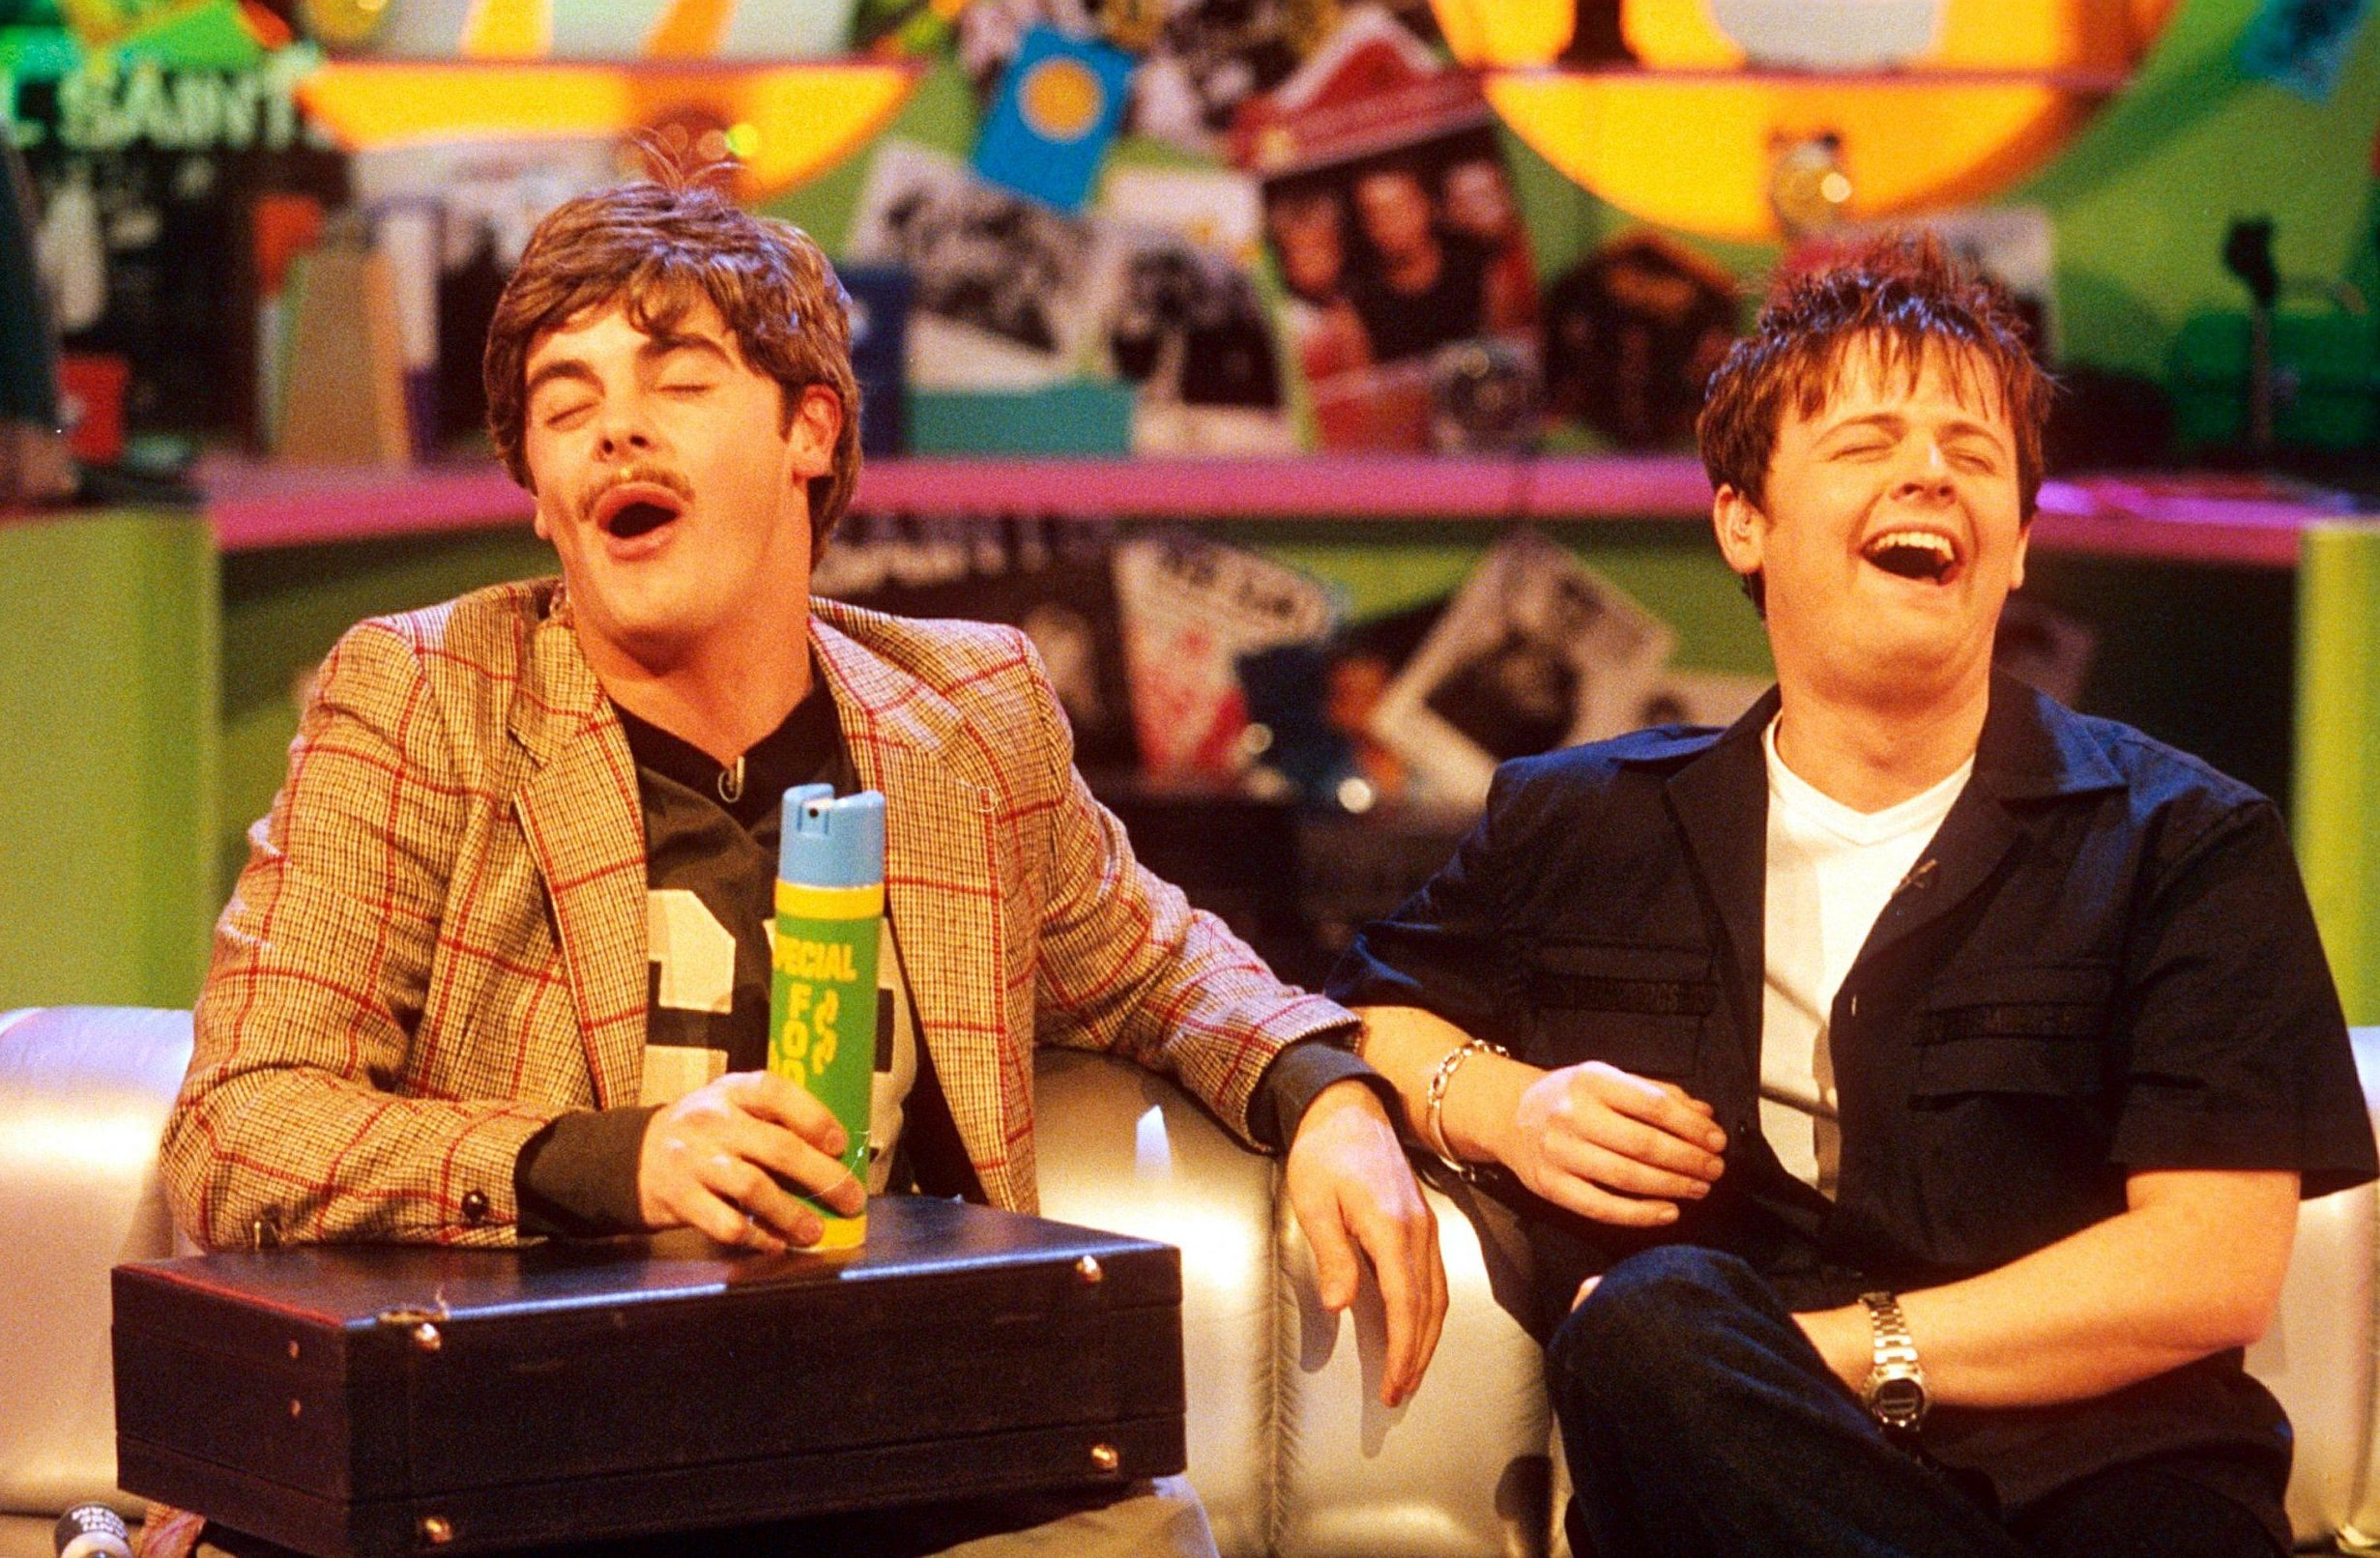 The SM:TV reunion of our dreams is coming in August 2018 confirm Ant and Dec